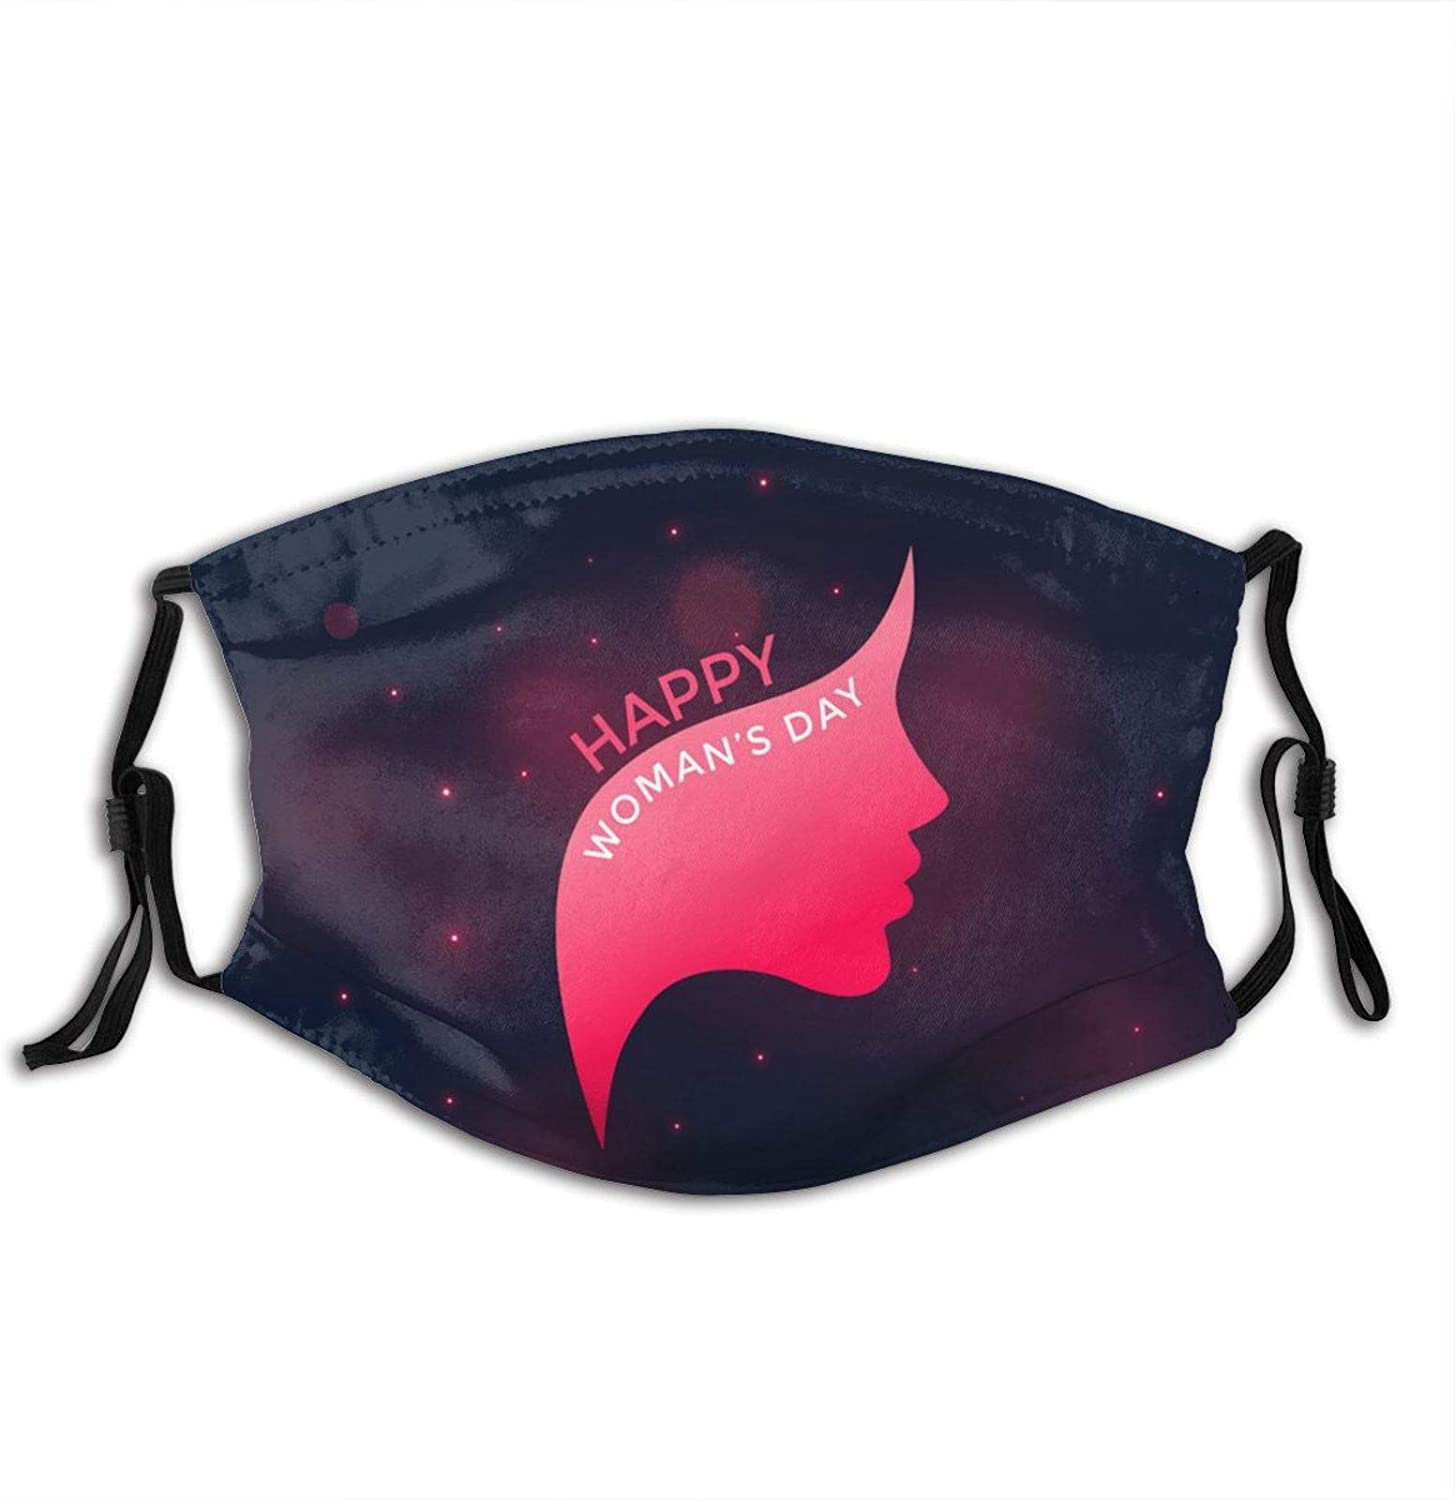 You Are Special Happy Women's Day Face Mask Fashion Adult Scarf, Reusable Washable Bandana With 2 Filters, For Men & Women